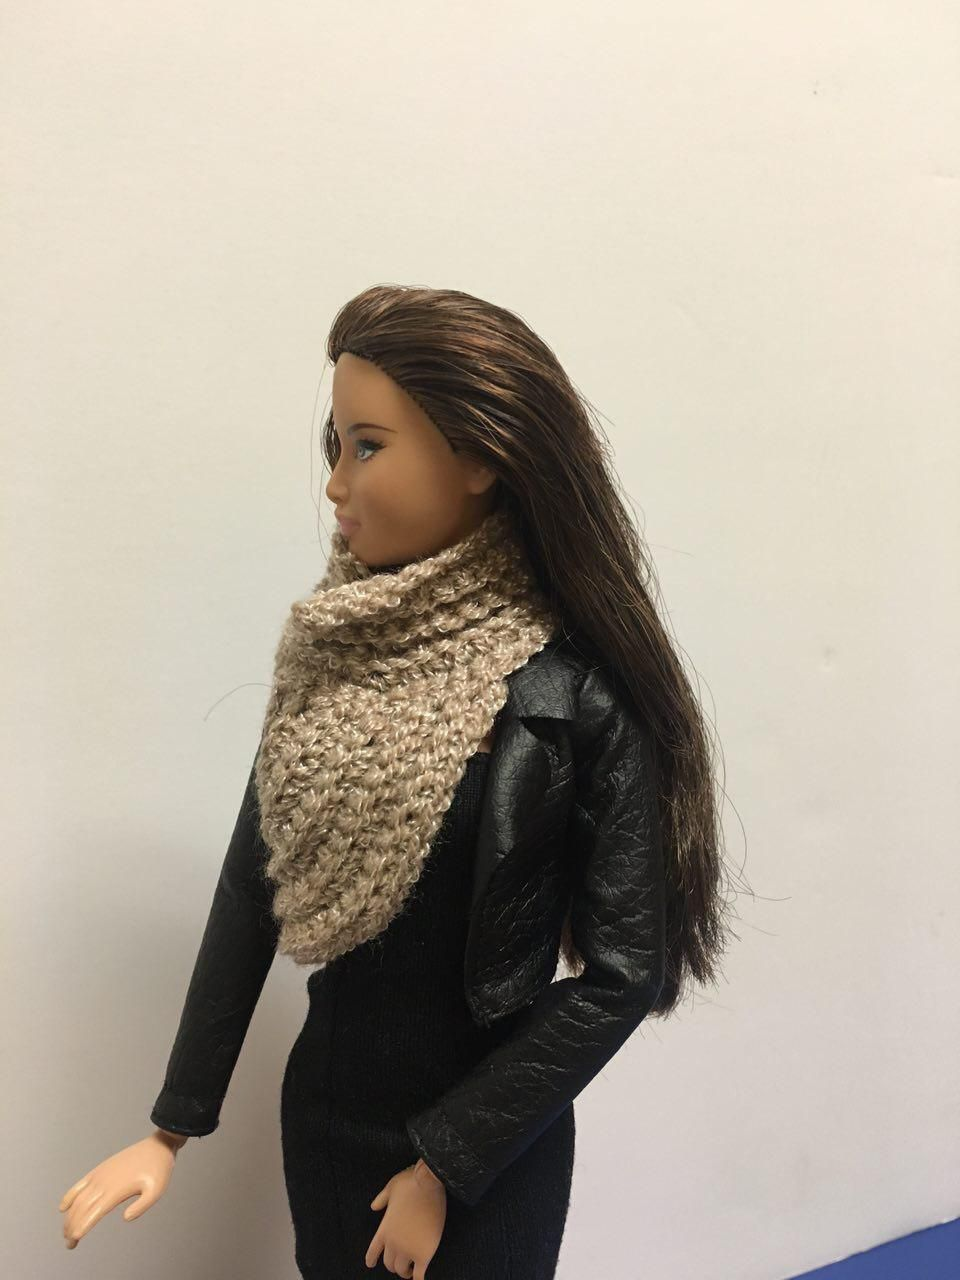 Crochet Hunger Games Inspired Katniss Cowl Vest for FR, Barbie and Similar 12 inch Dolls  https://www.etsy.com/shop/Fancydolldesign?ref=hdr_shop_menu